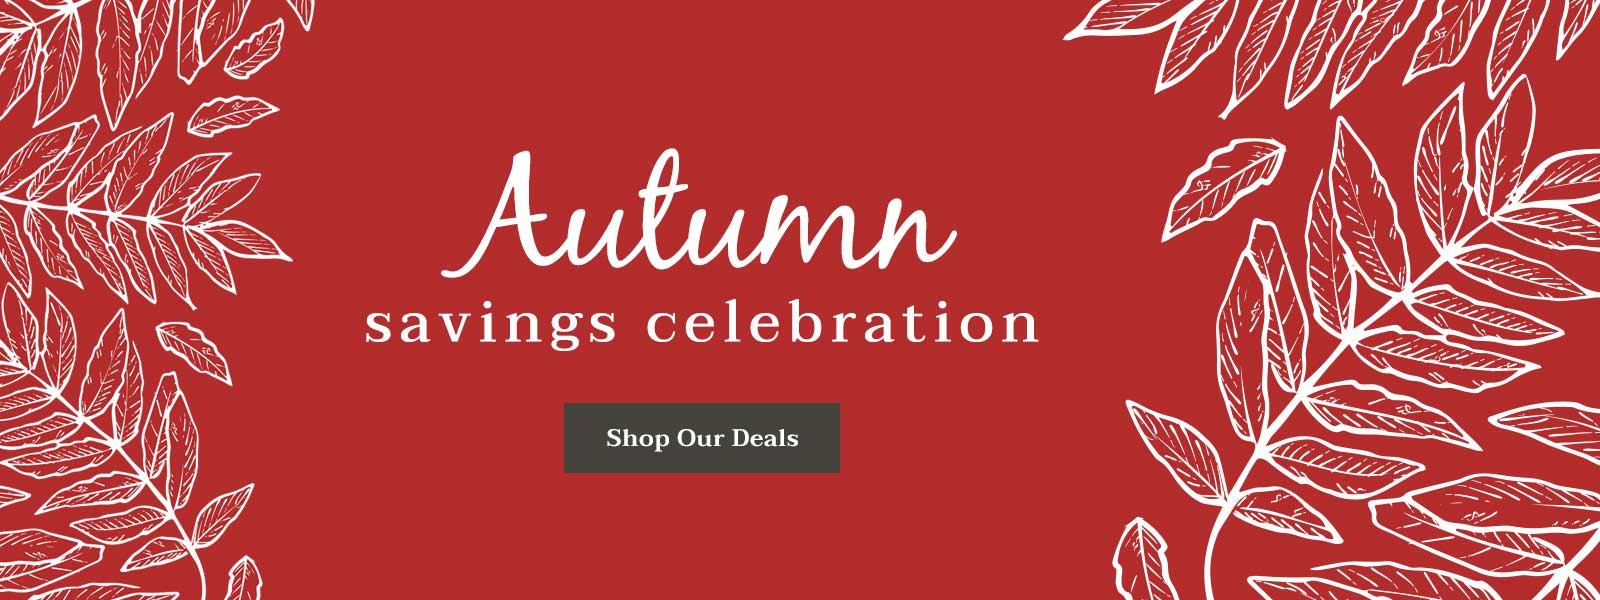 Autumn Savings Celebration